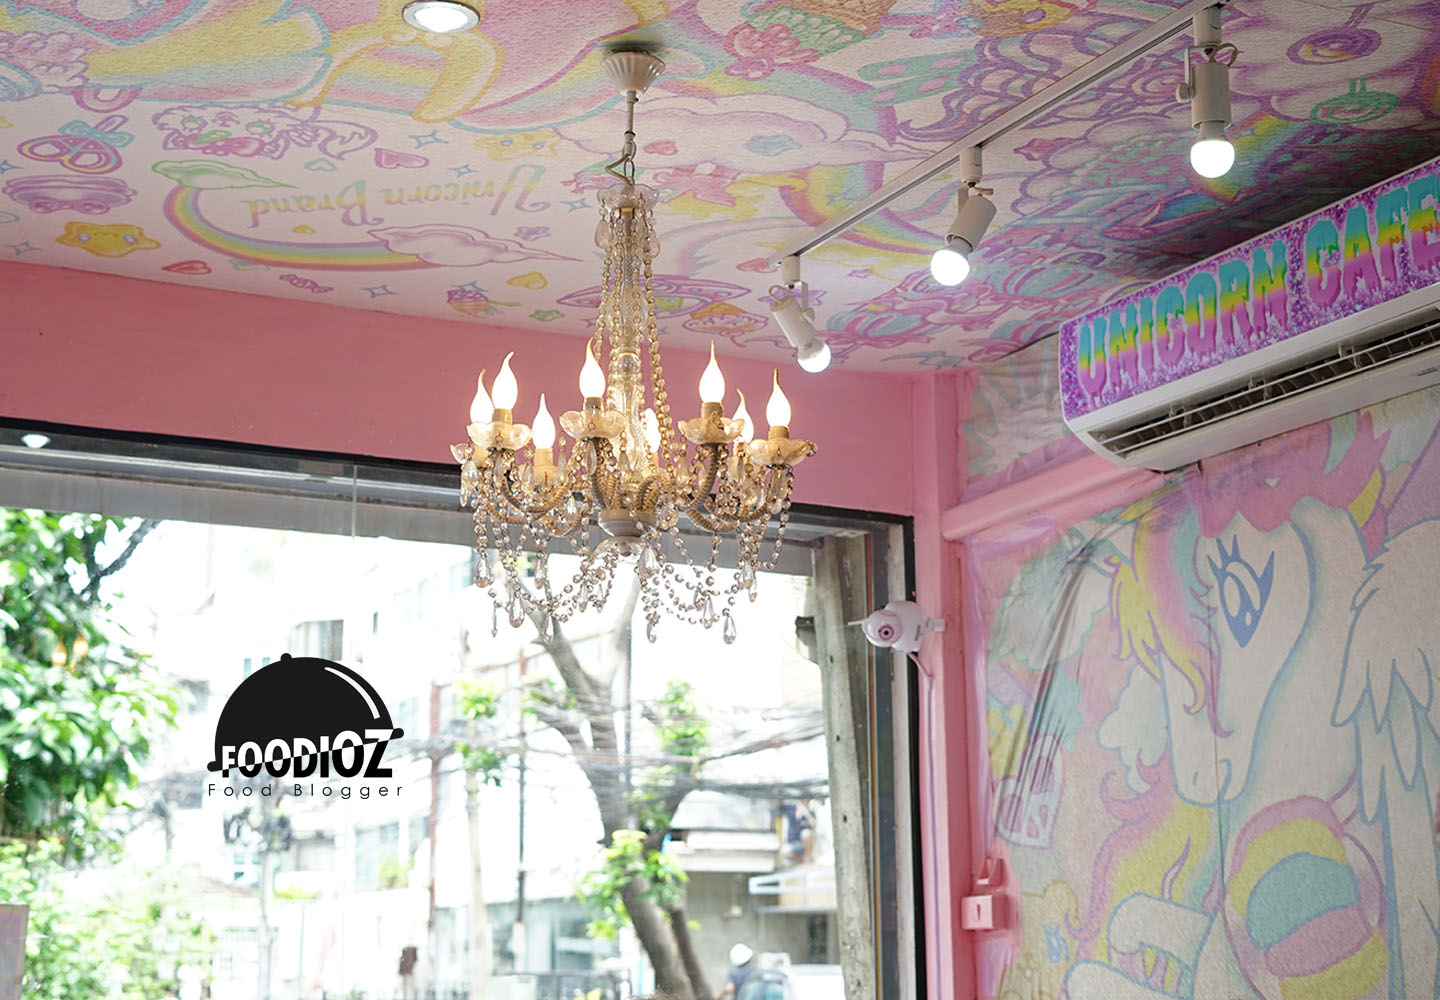 unicorn cafe, bangkok, thailand